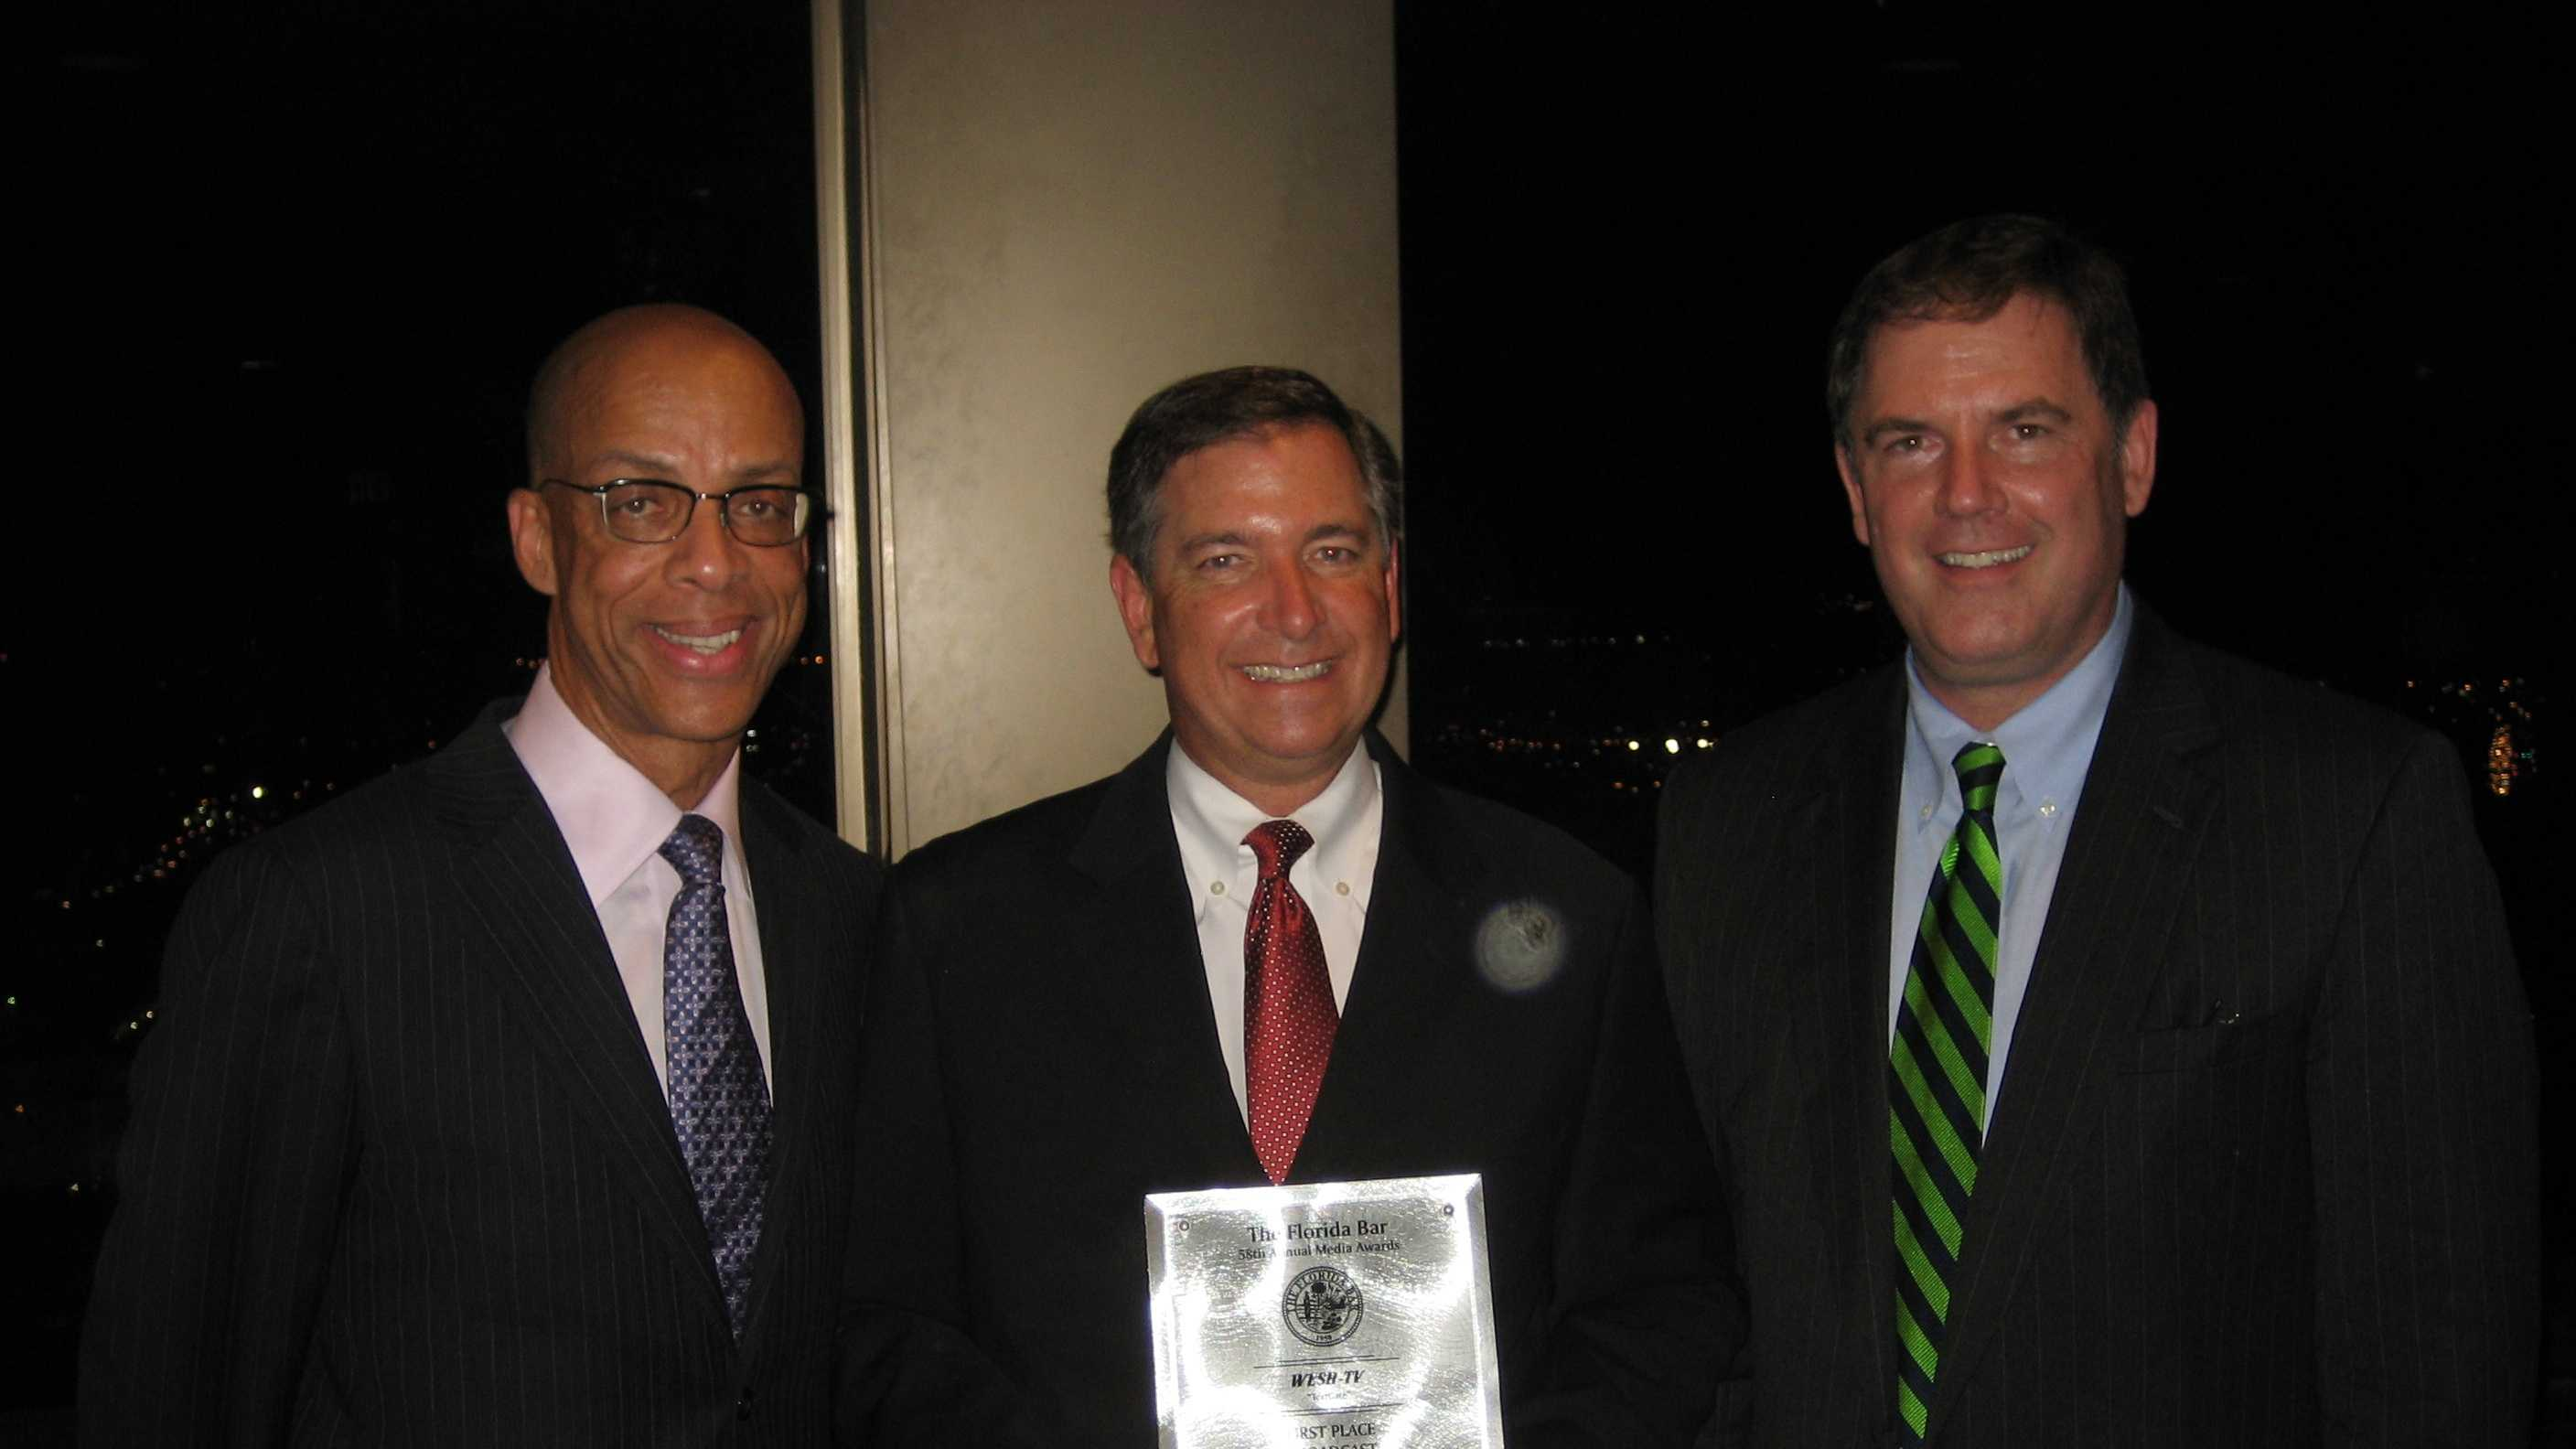 (L to R) Florida Bar President Eugene Pettis, Greg Fox, Florida Bar Media Awards Chairman Ed Birk